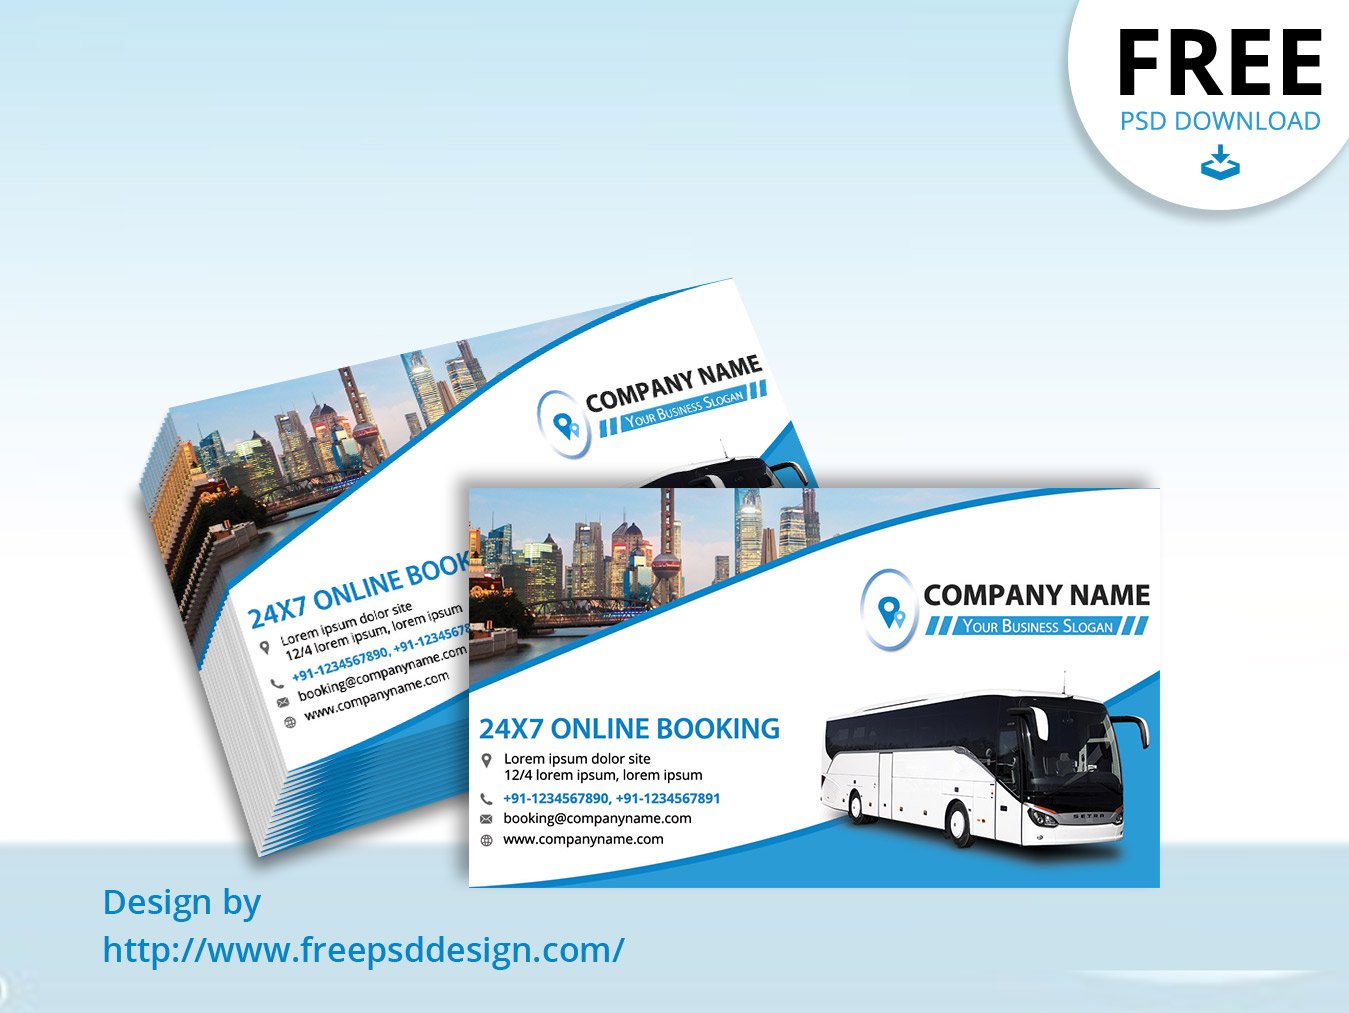 Tours and travel business card templates archives free psd design travels business card mockup psd template accmission Image collections